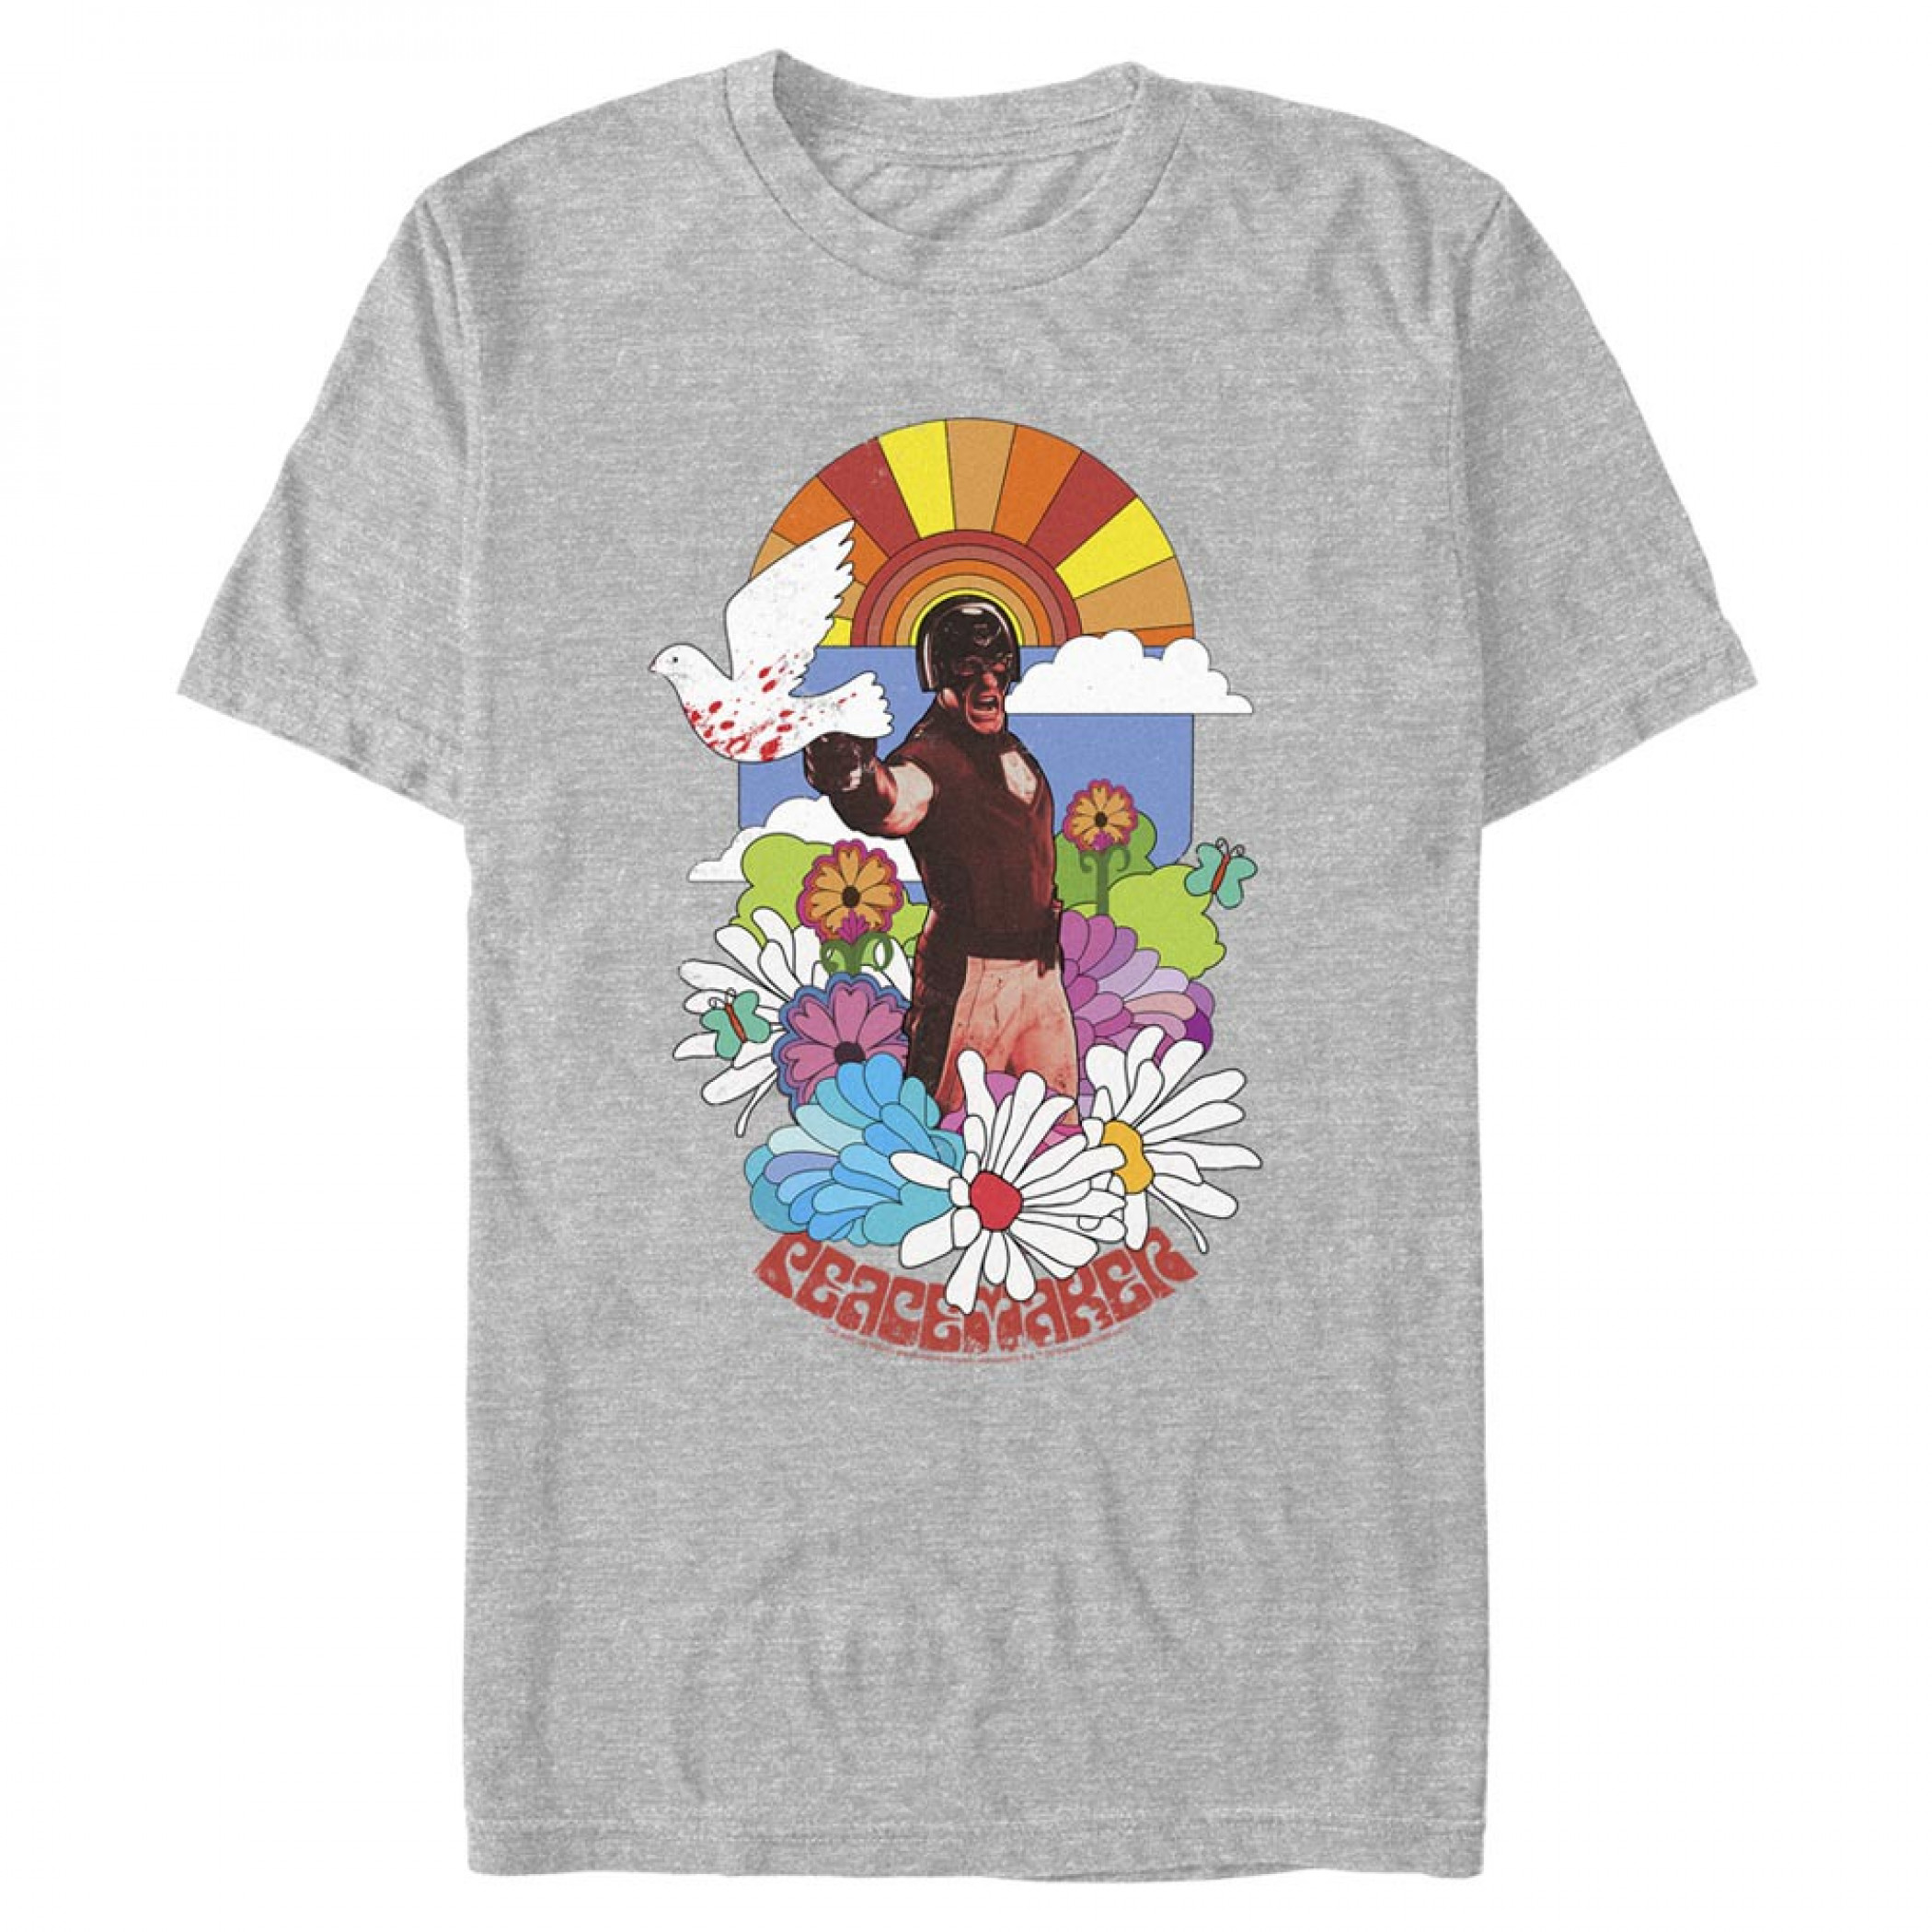 The Suicide Squad Peacemaker 70's Styled T-Shirt